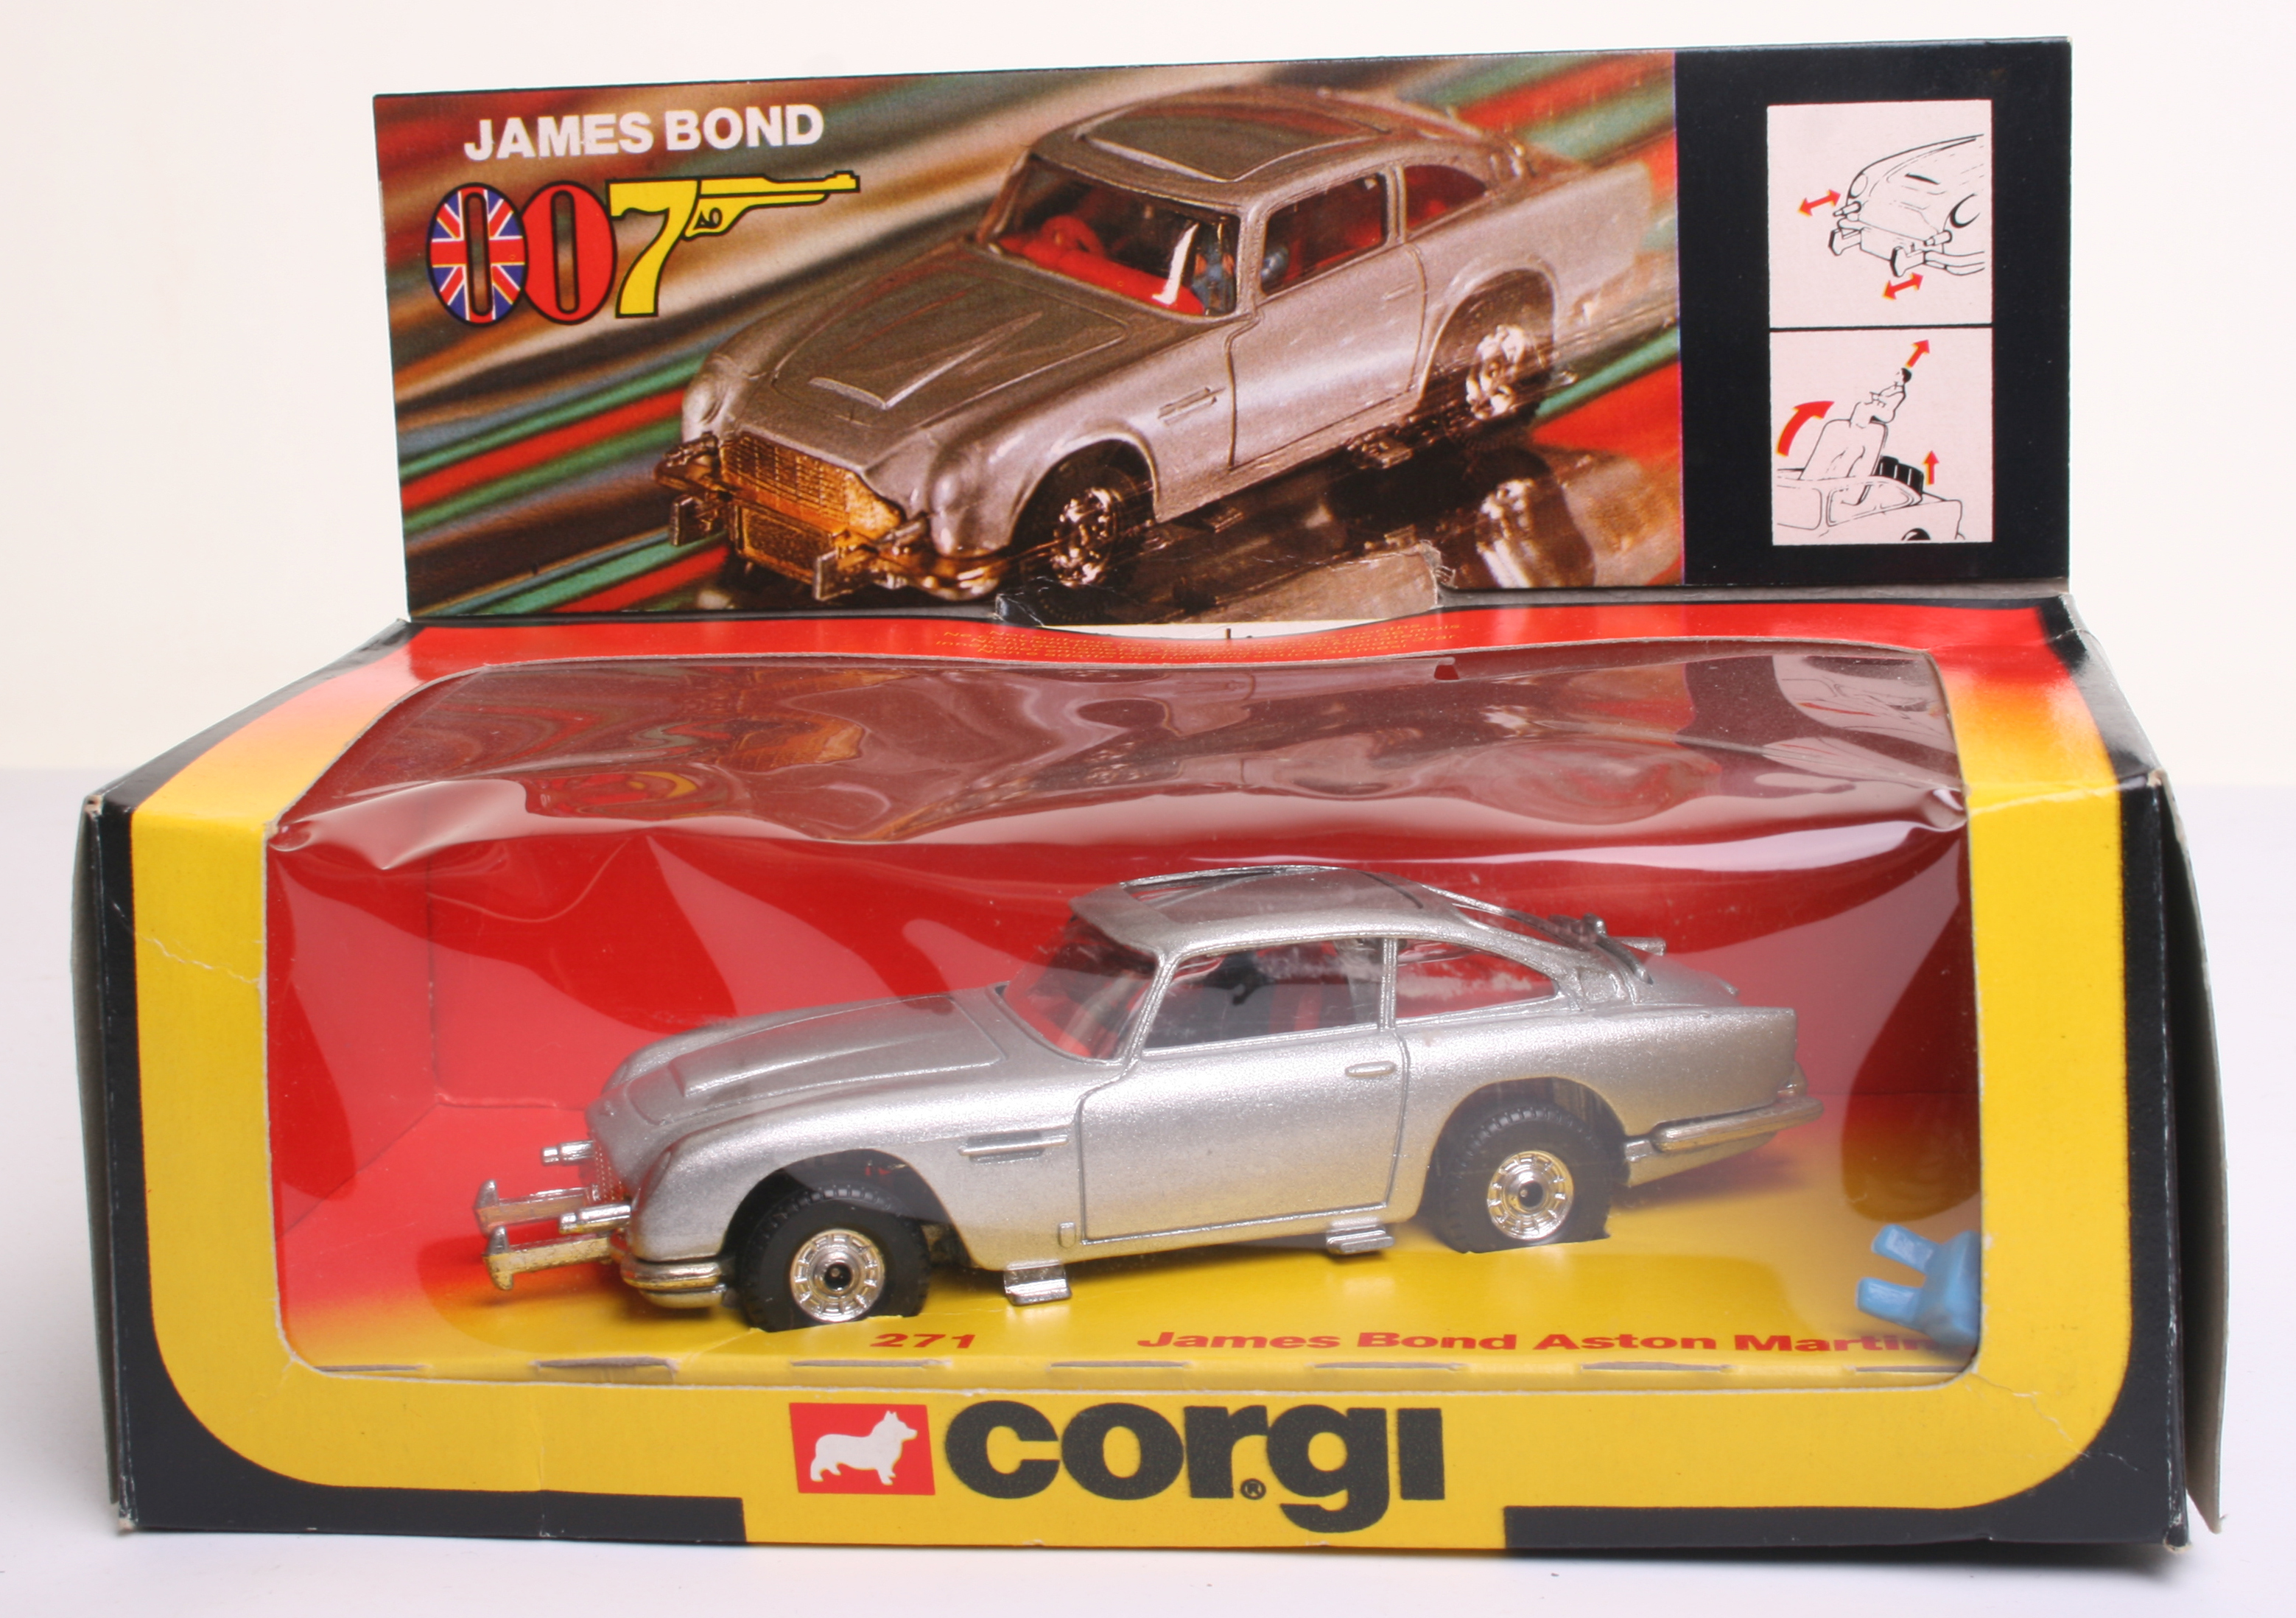 corgi toys 271 james bond aston martin db5, silver body, red